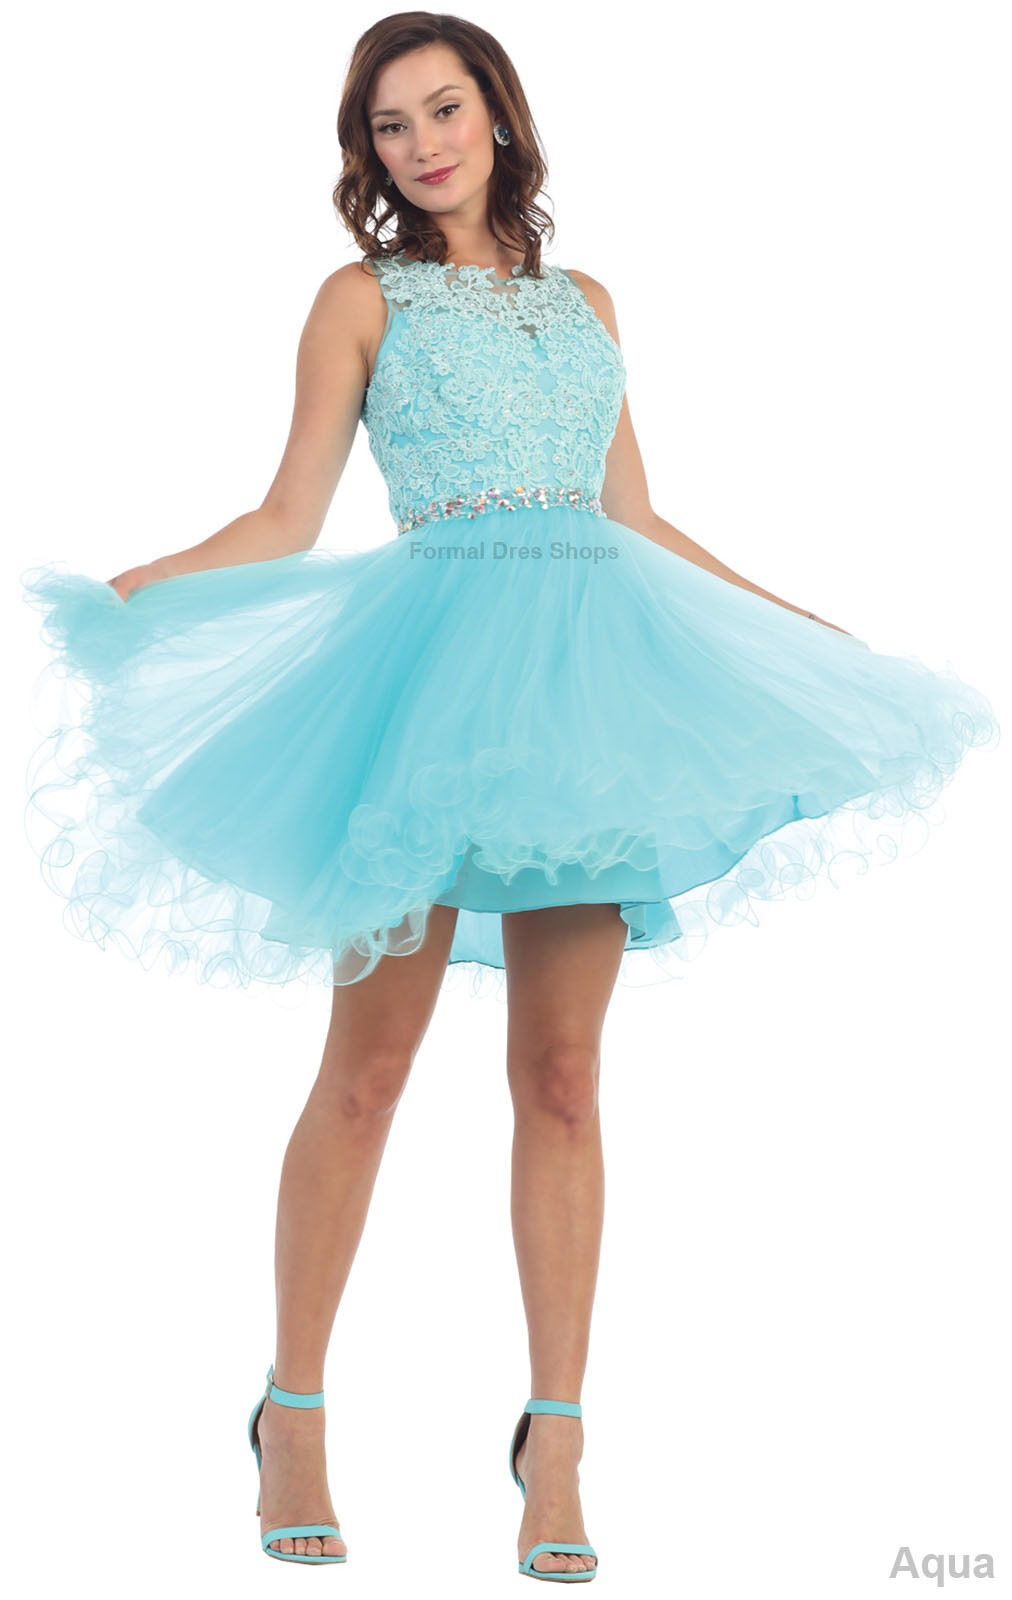 b73d0634d33 Details about DEMURE BODICE SHORT PROM DRESSES COCKTAIL HOMECOMING SWEET 16  SEMI FORMAL DANCE